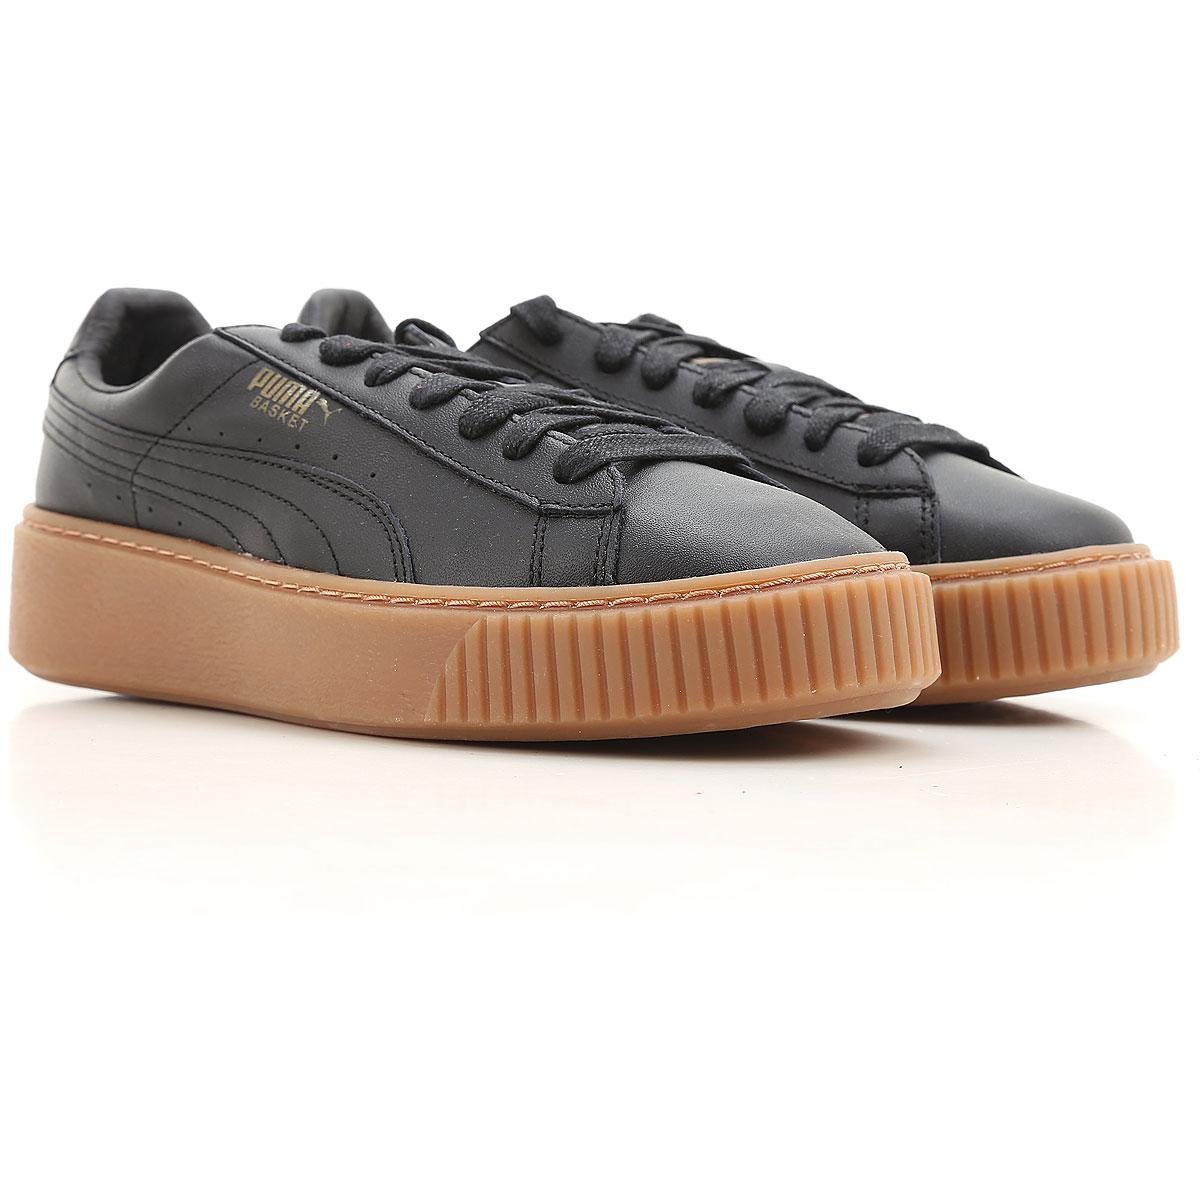 Lyst - Puma Shoes For Women in Black